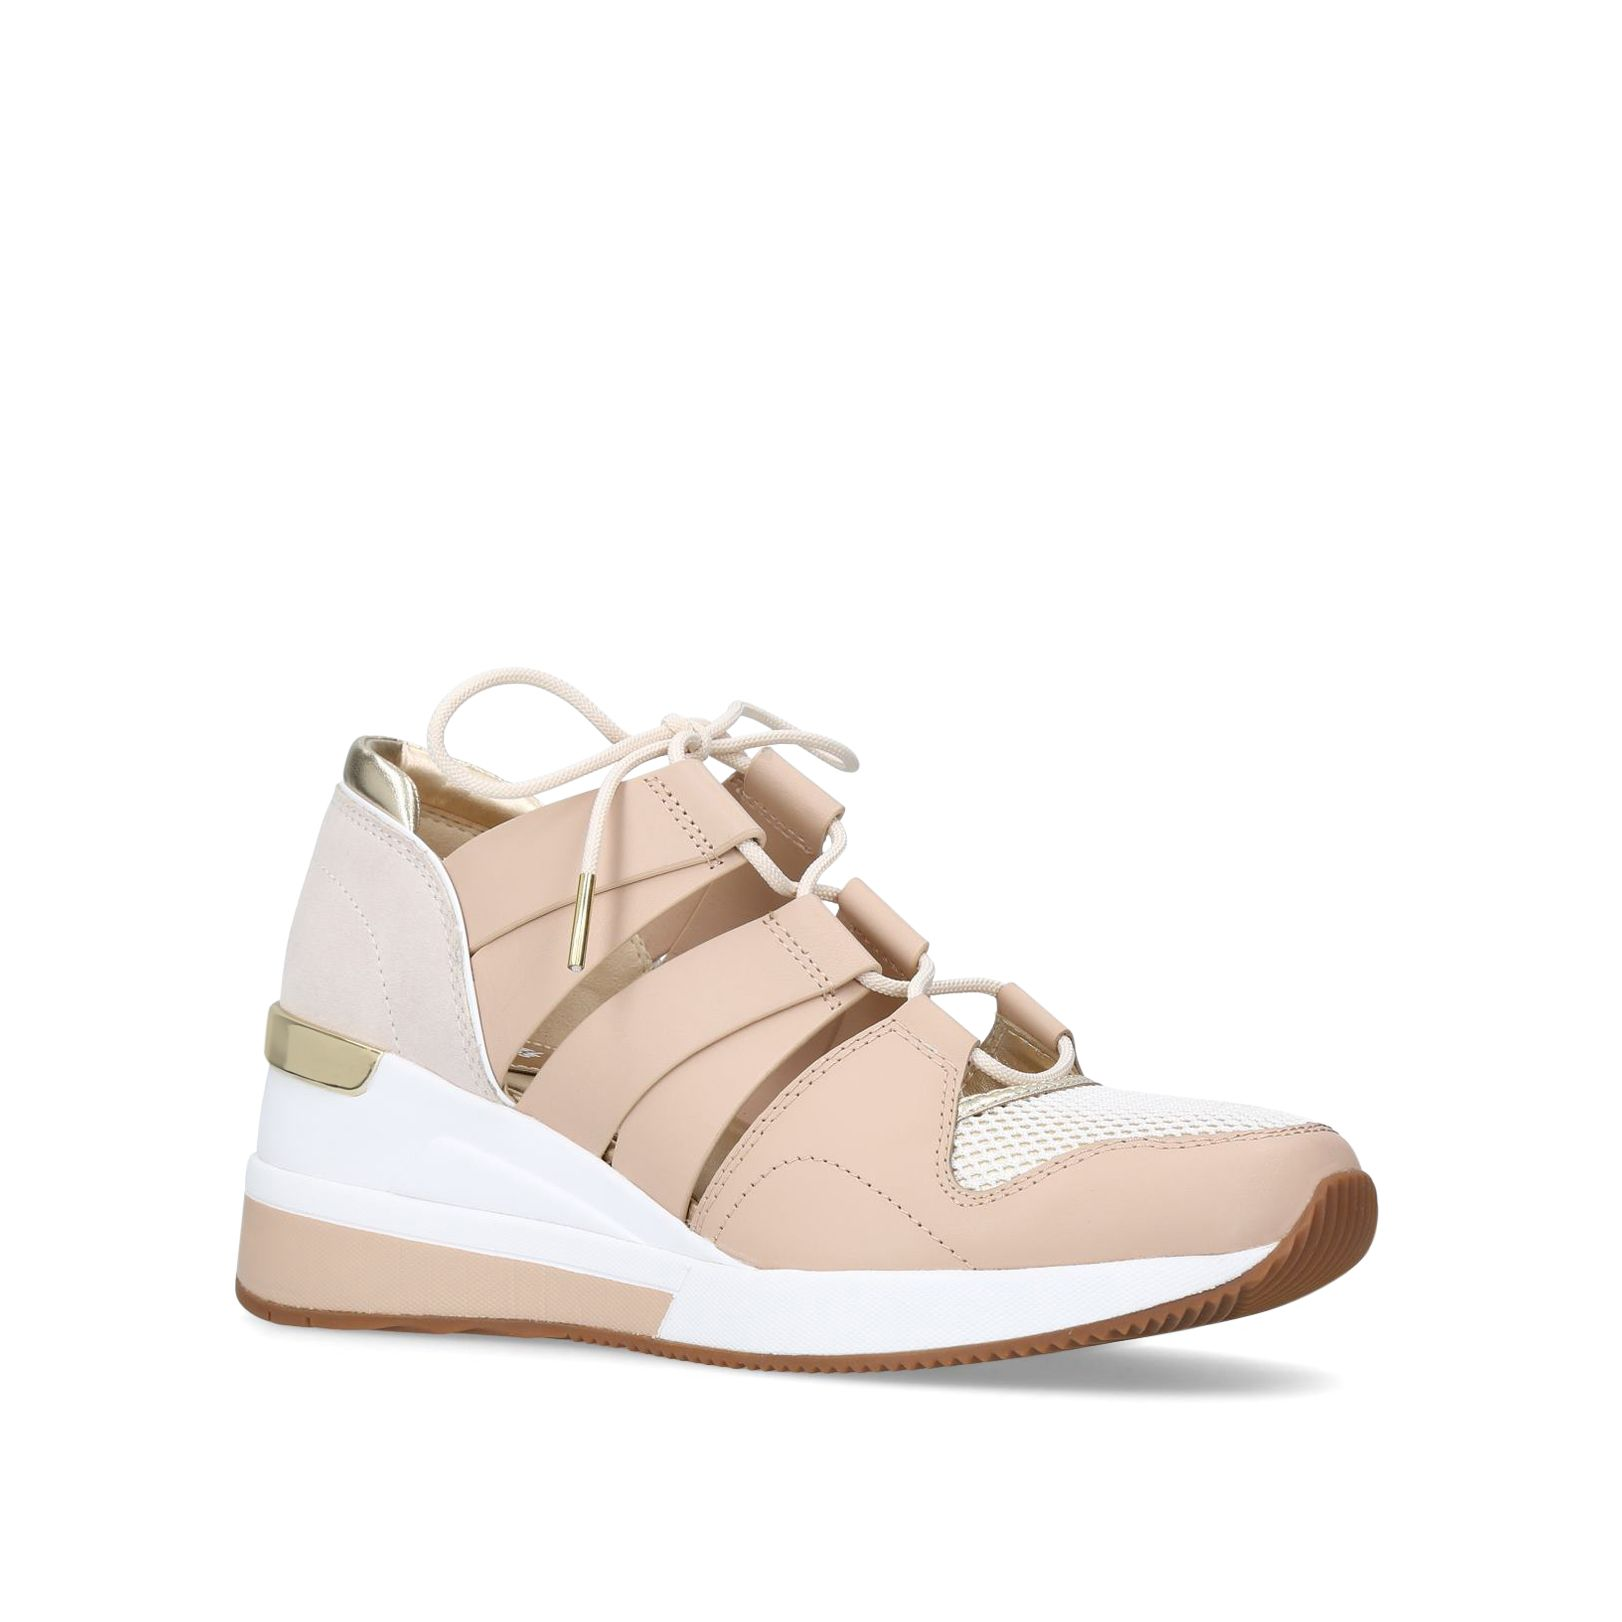 Michael Kors Beckett Trainers, Taupe